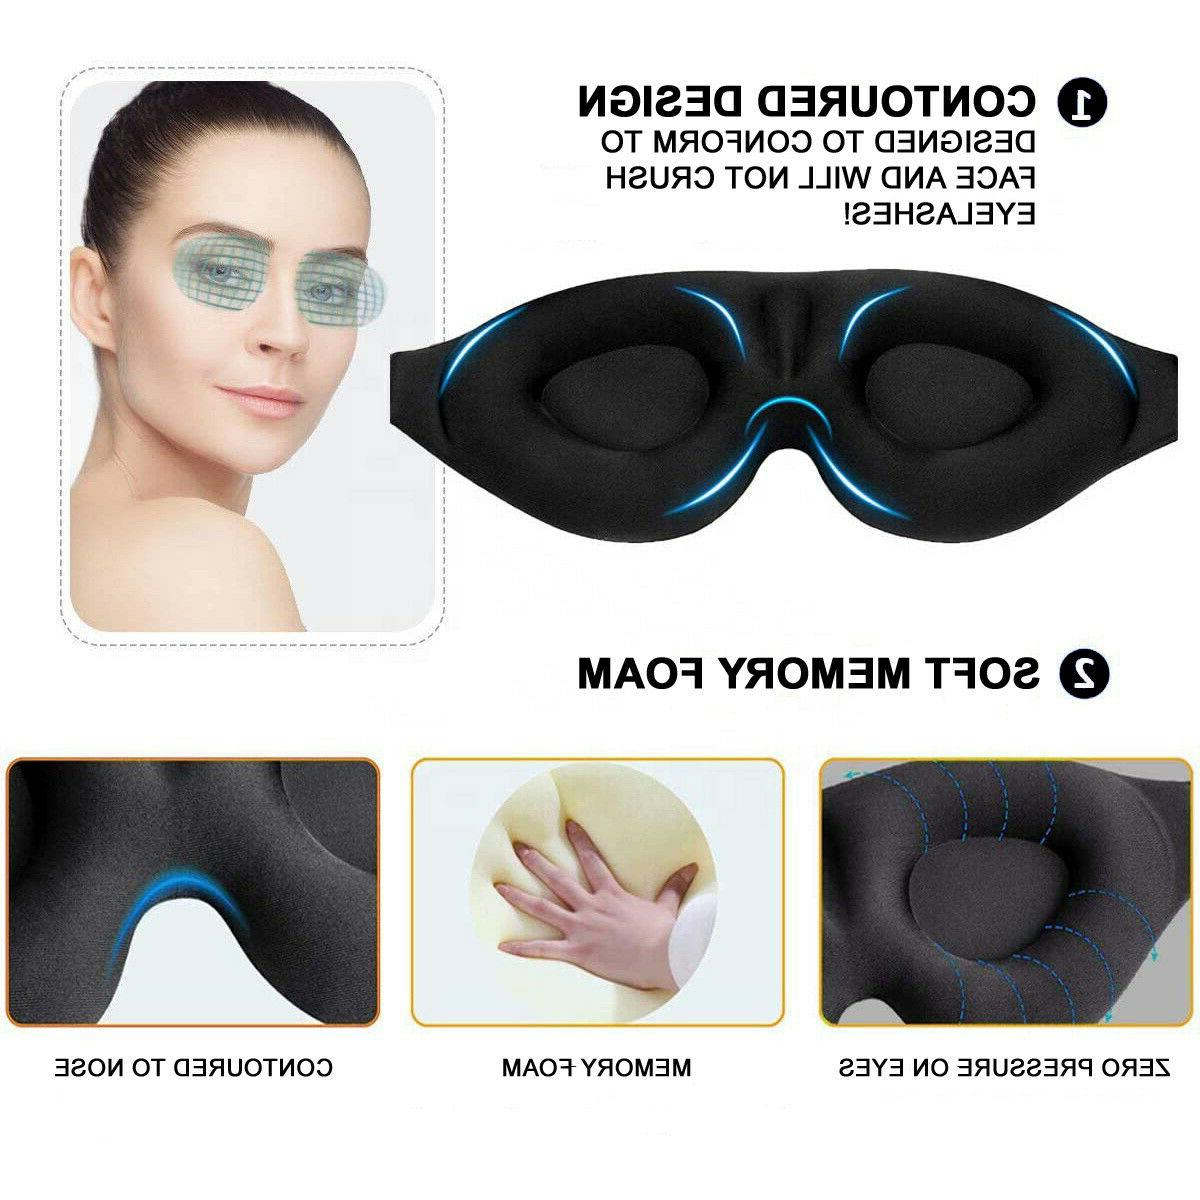 Sleep Mask And Women Mask For Blindfold Accessories